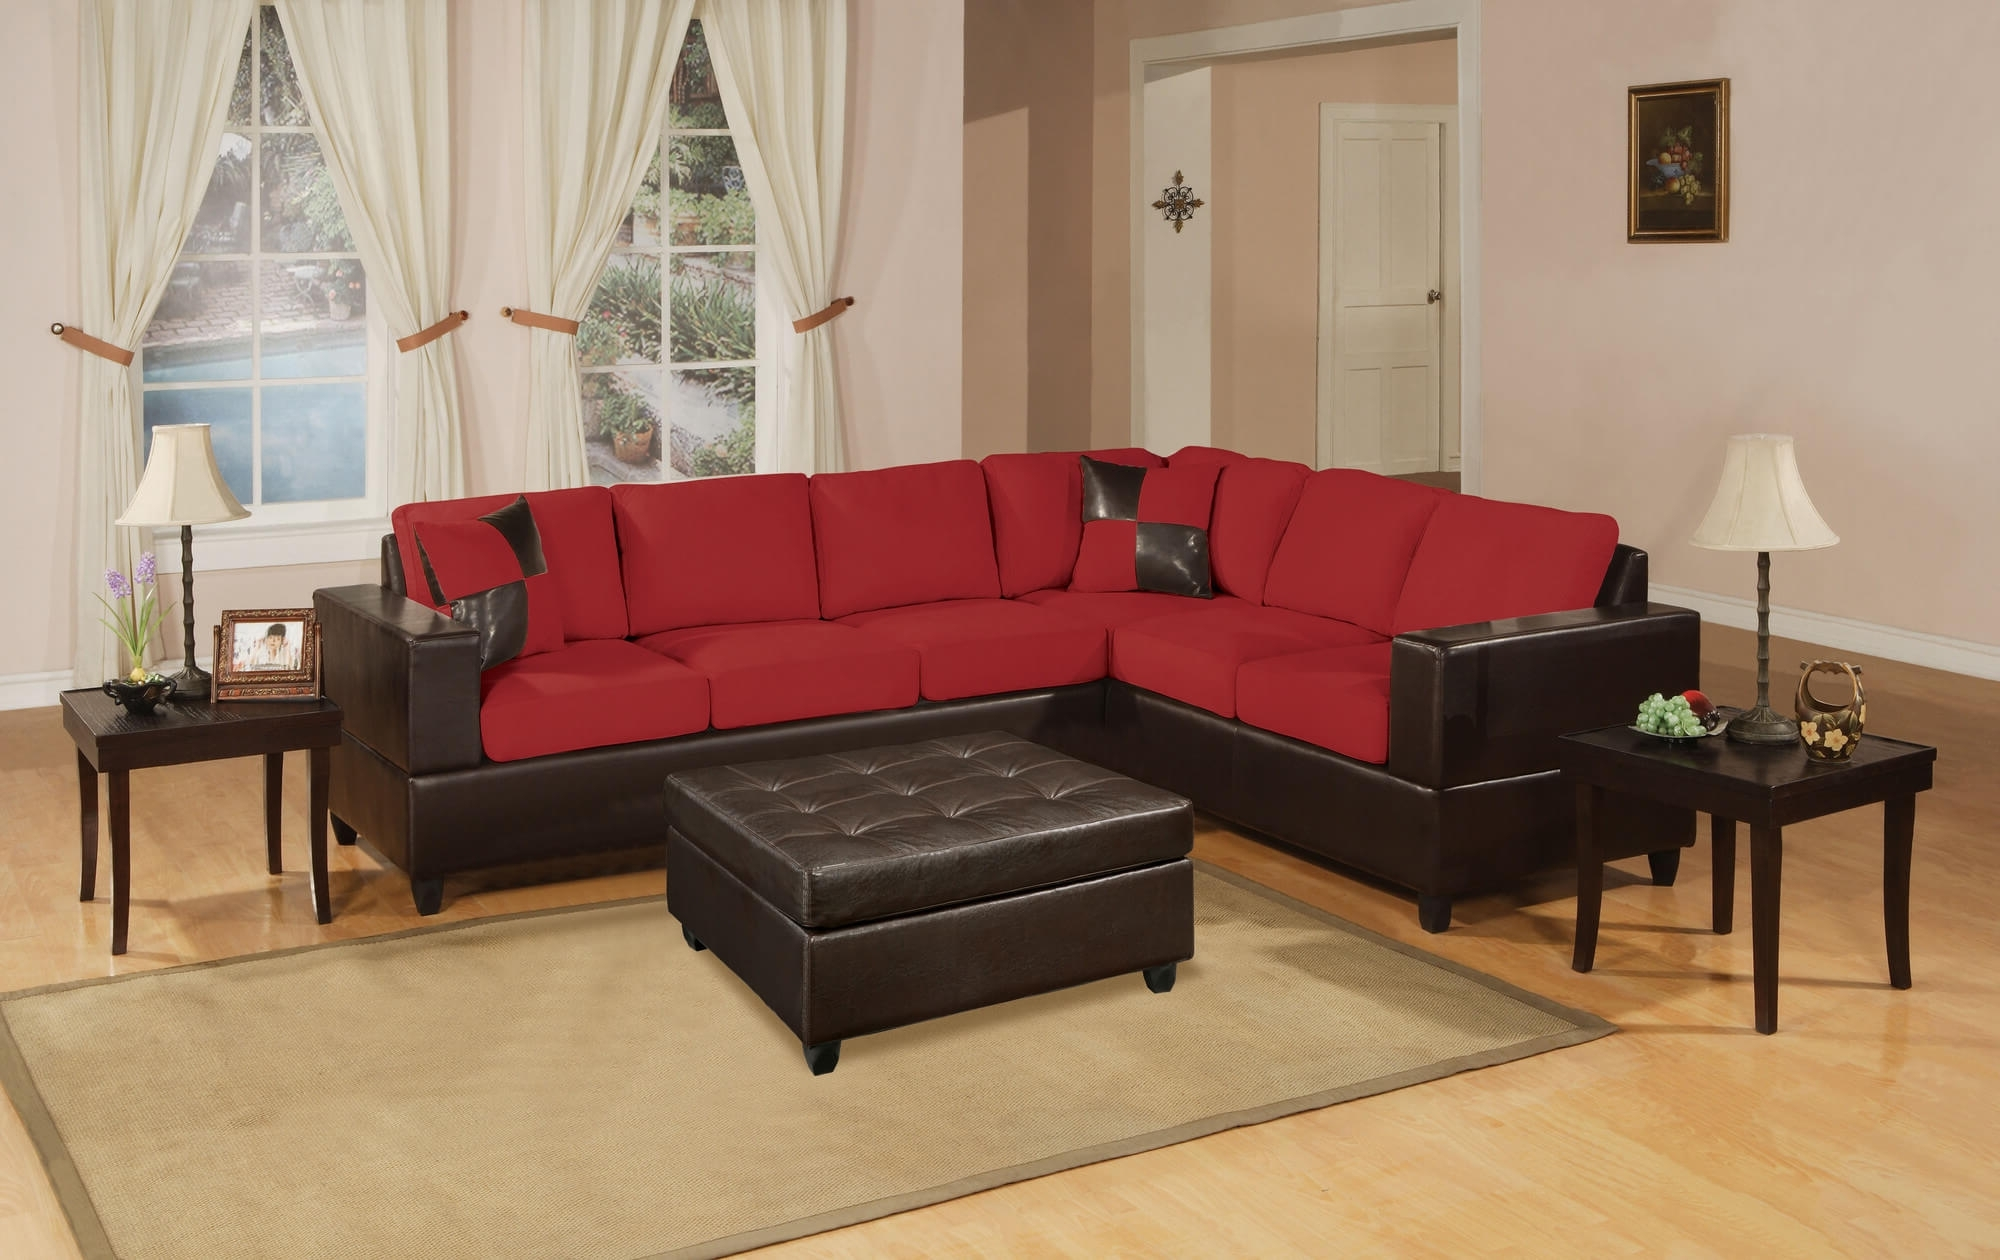 18 Stylish Modern Red Sectional Sofas For Most Recent Red Sectional Sofas (Gallery 14 of 20)